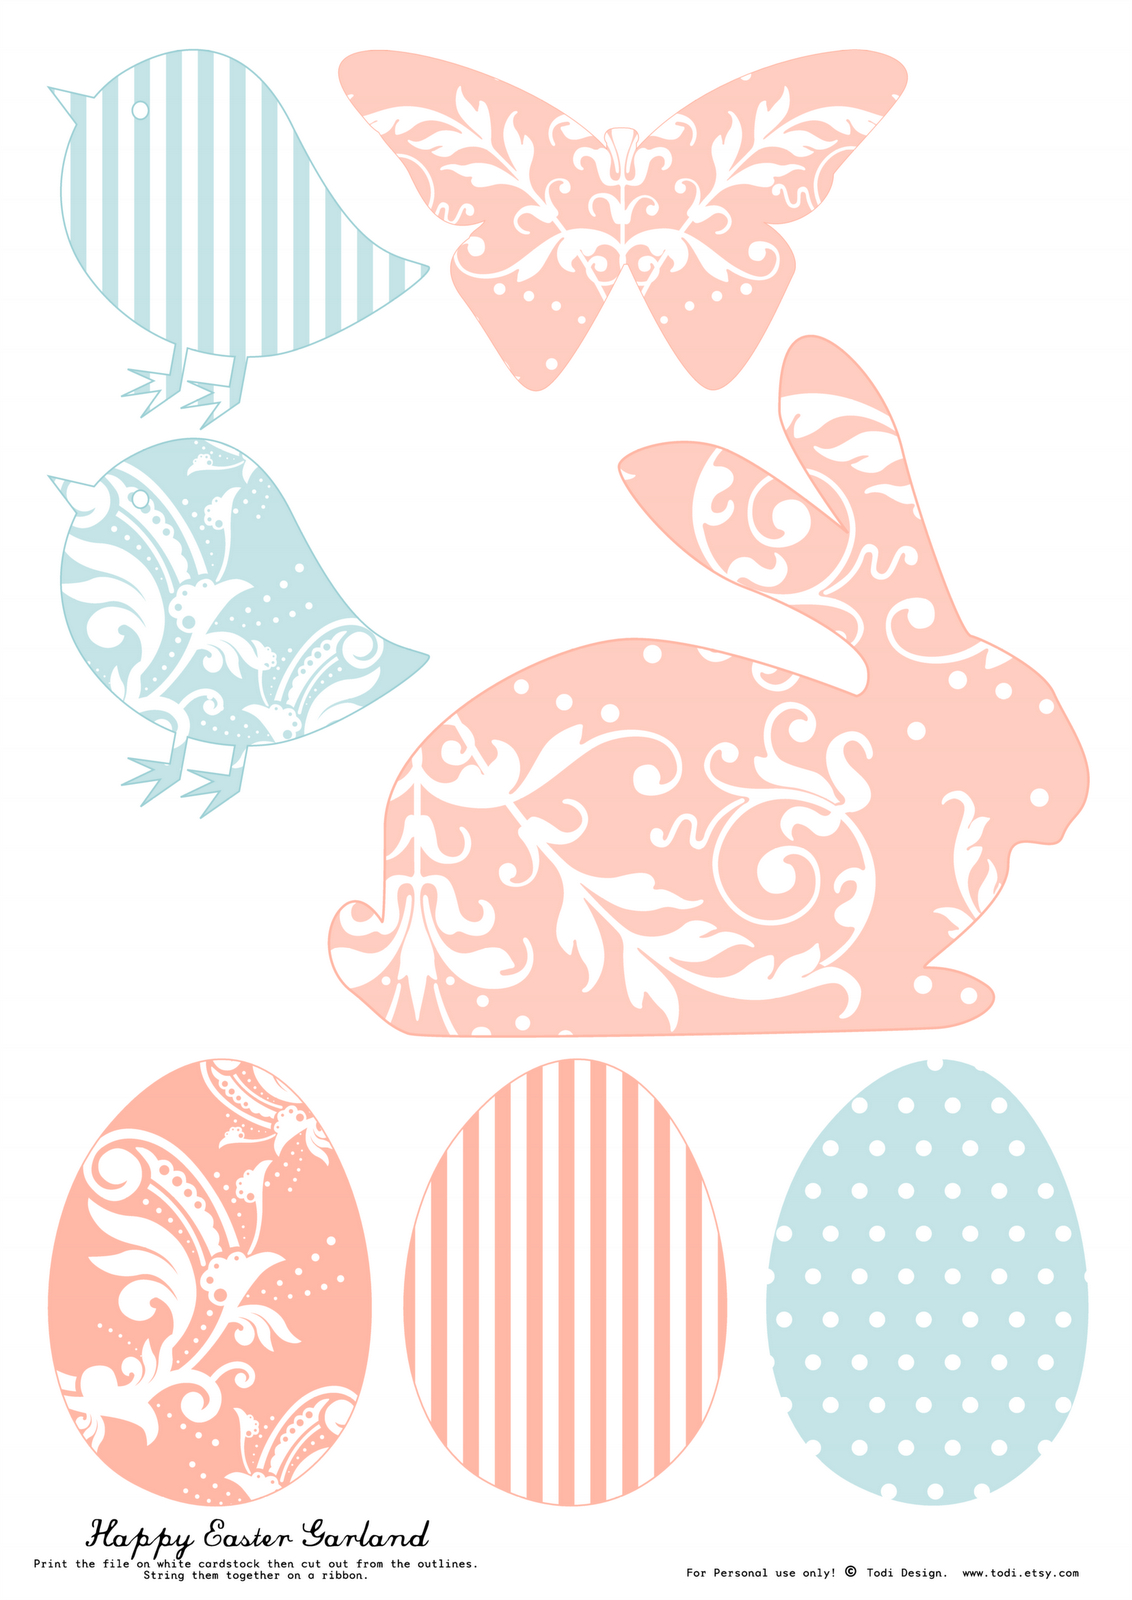 Todi: Free Printables For Easter Decoration. Th Print Used For This - Free Printable Easter Decorations